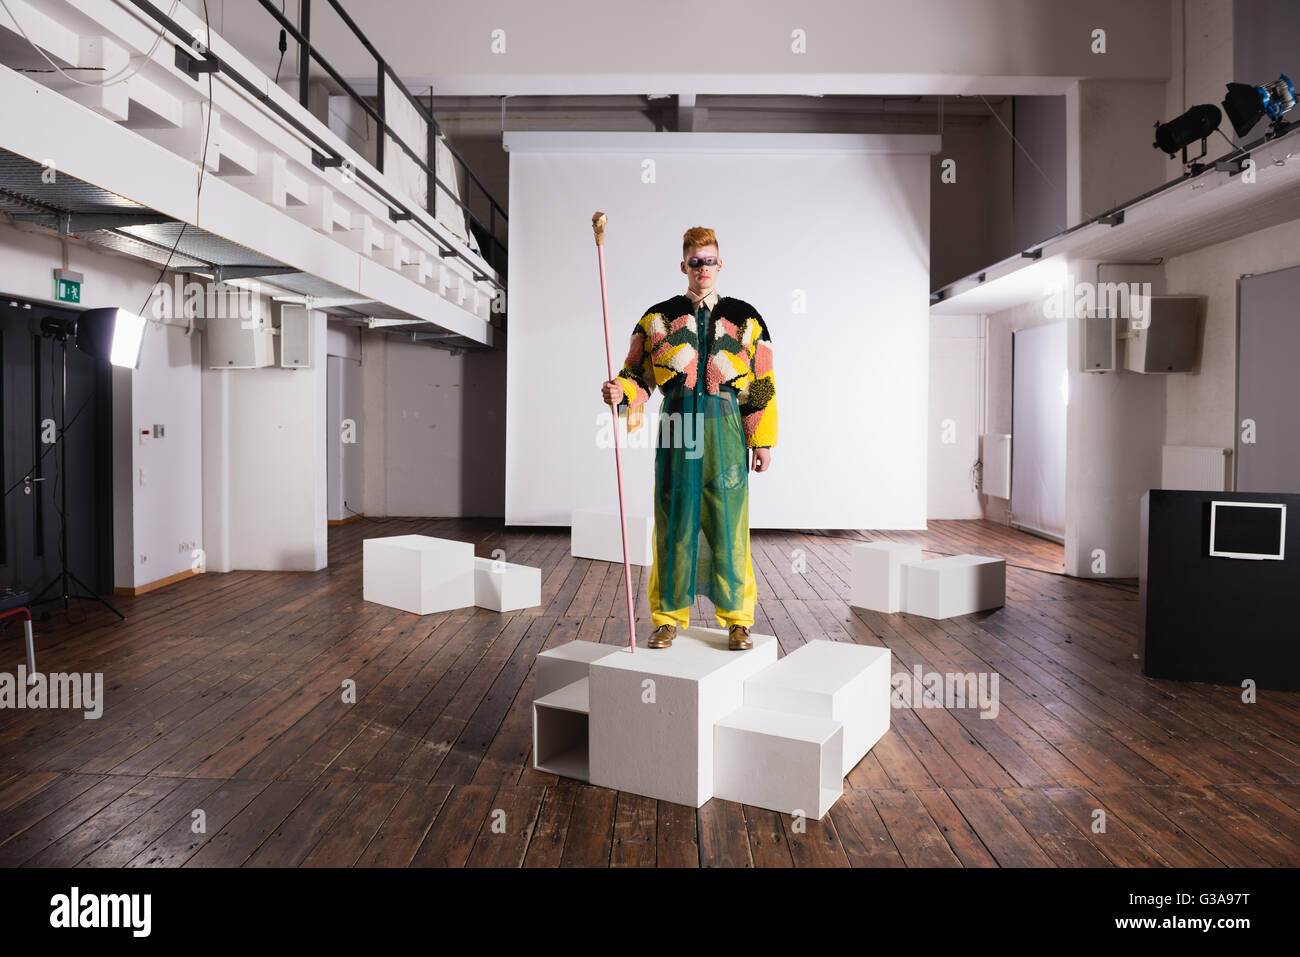 Extravagant fashion show - Stock Image